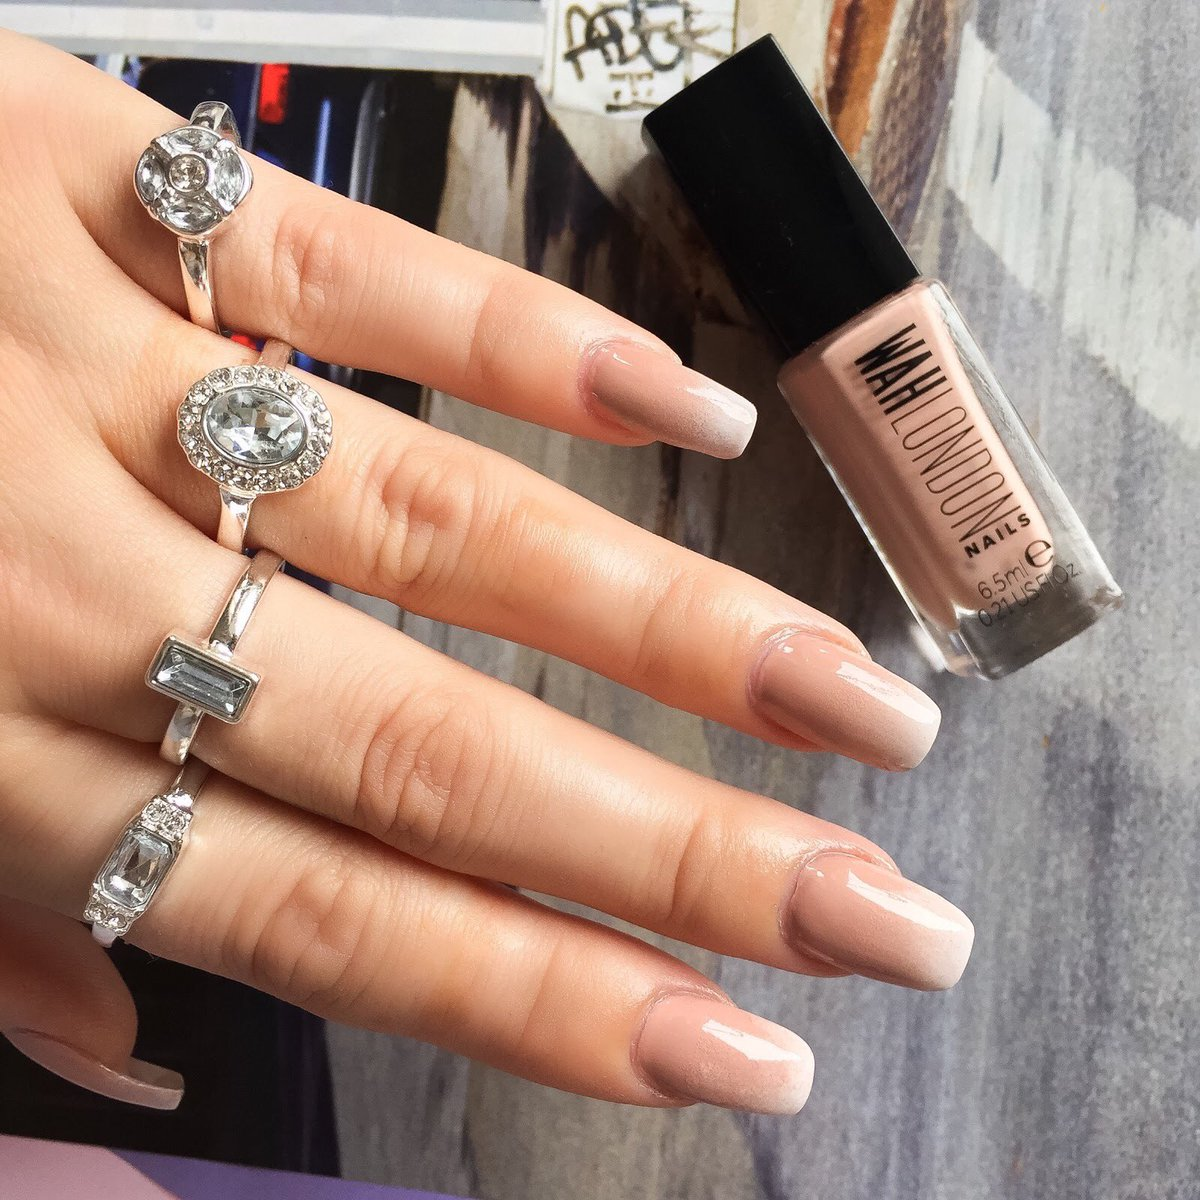 Milf hands many rings long nails